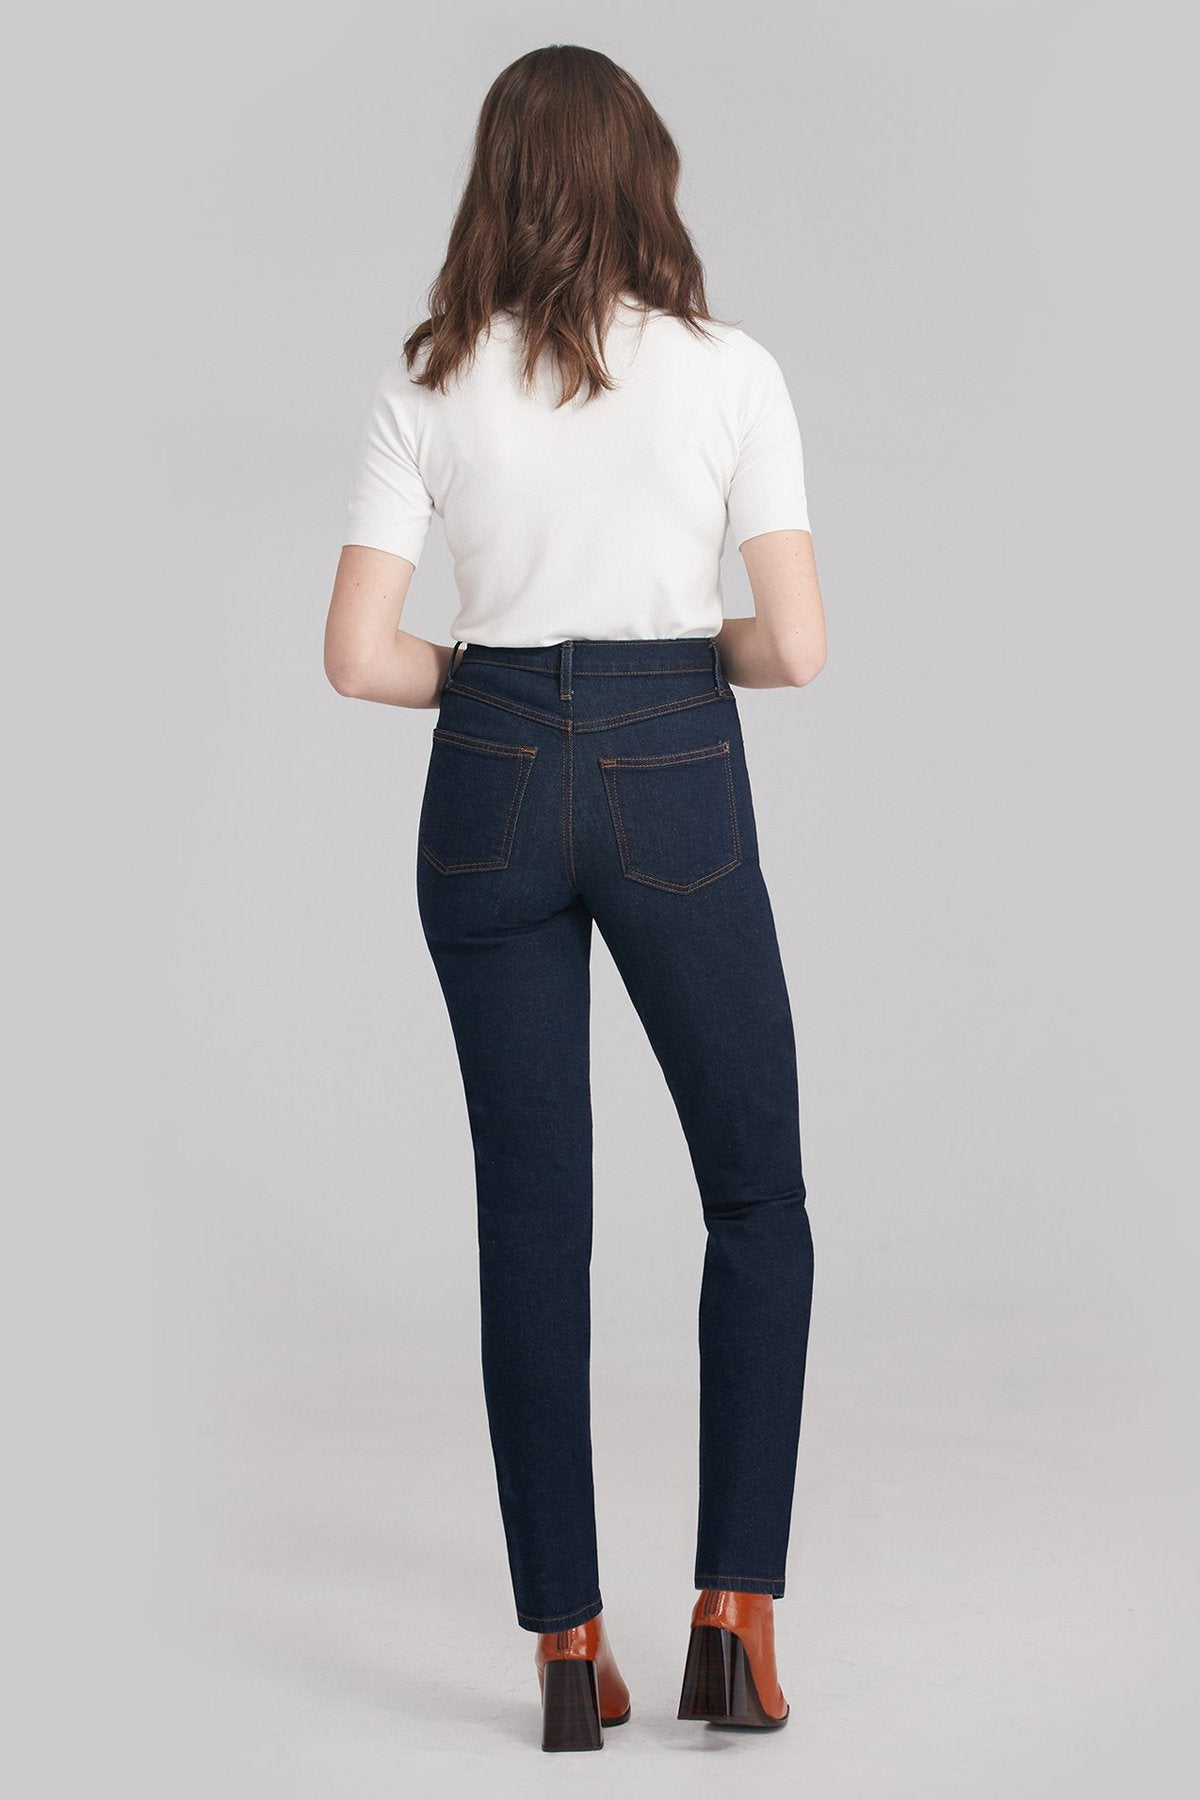 New High Rise Slim Yoga Jean, Fearless, back view, high waist, slim fit, 30 inch inseam, sizes 24-34, made in Canada